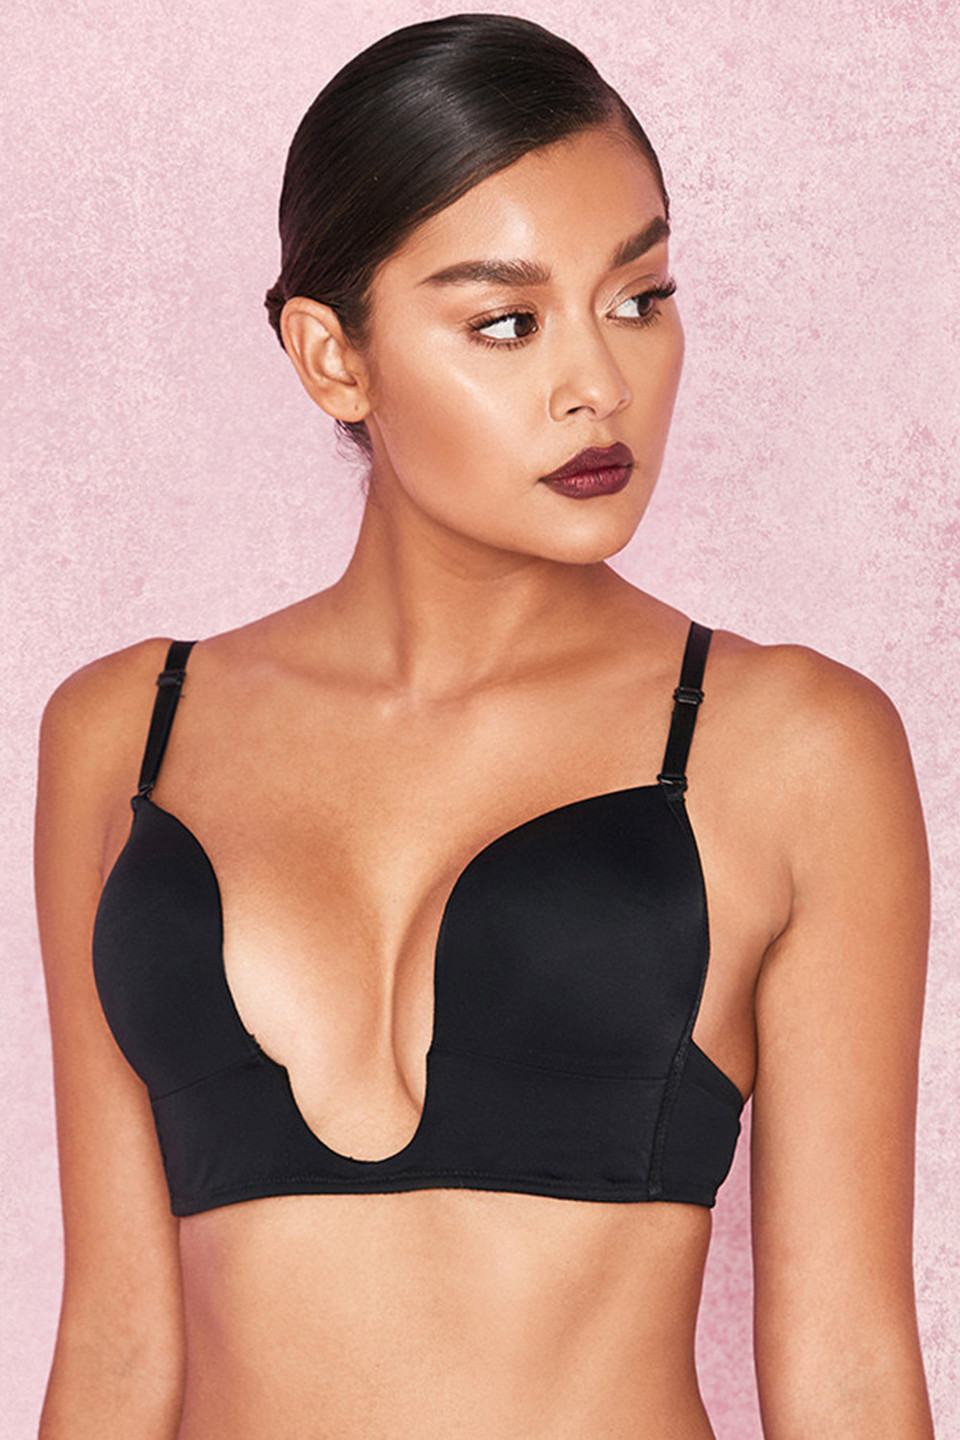 Deep V Bra for Low Cut Dresses